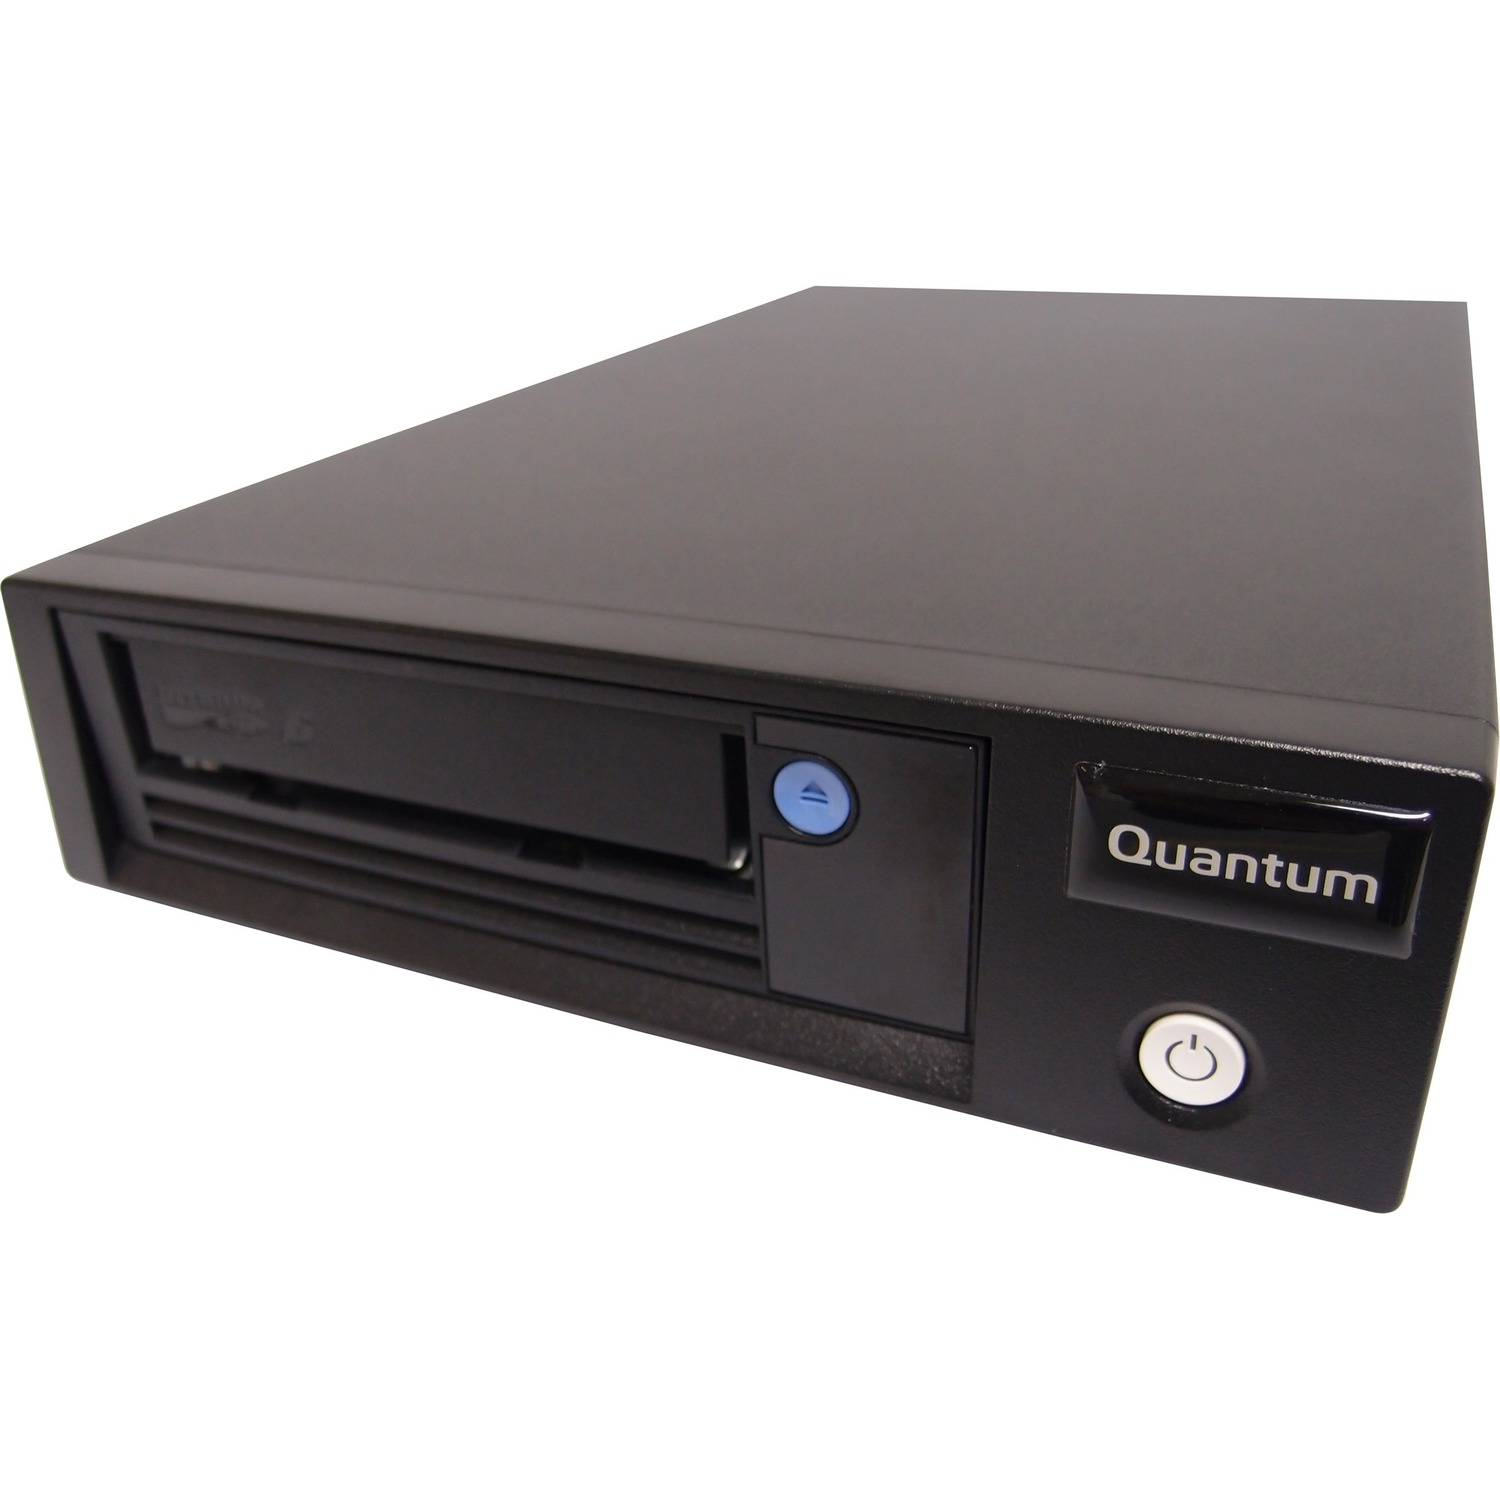 Quantum LTO-6 Tape Drive - 2.50 TB Native/6.25 TB Compressed - SAS - 1/2H Height - 1U Rack Height